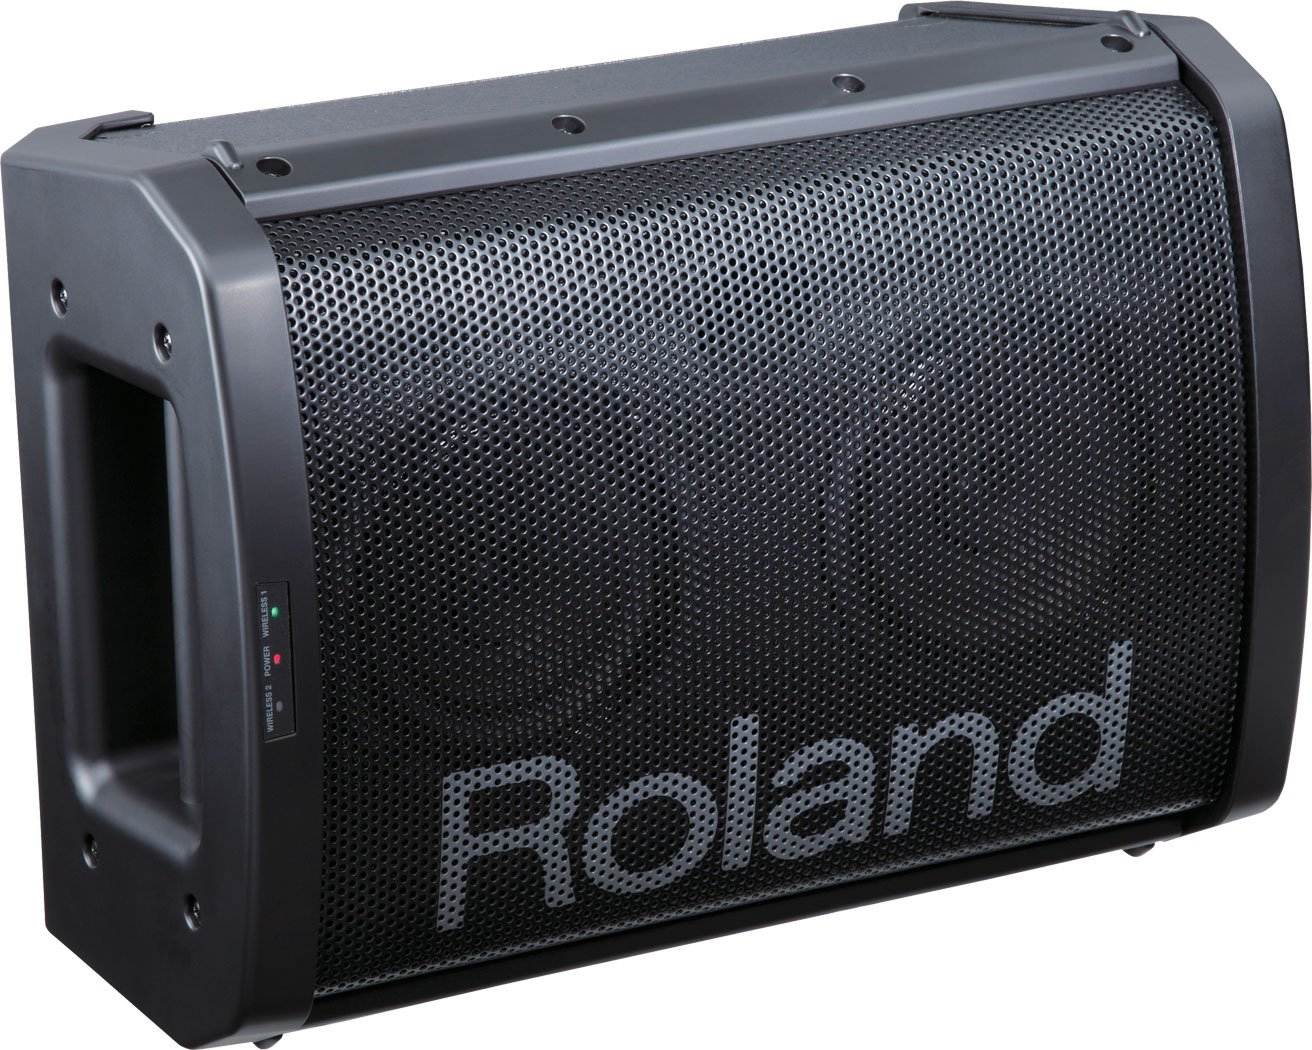 Black Portable Battery-Powered Amplifier with Wireless Microphone